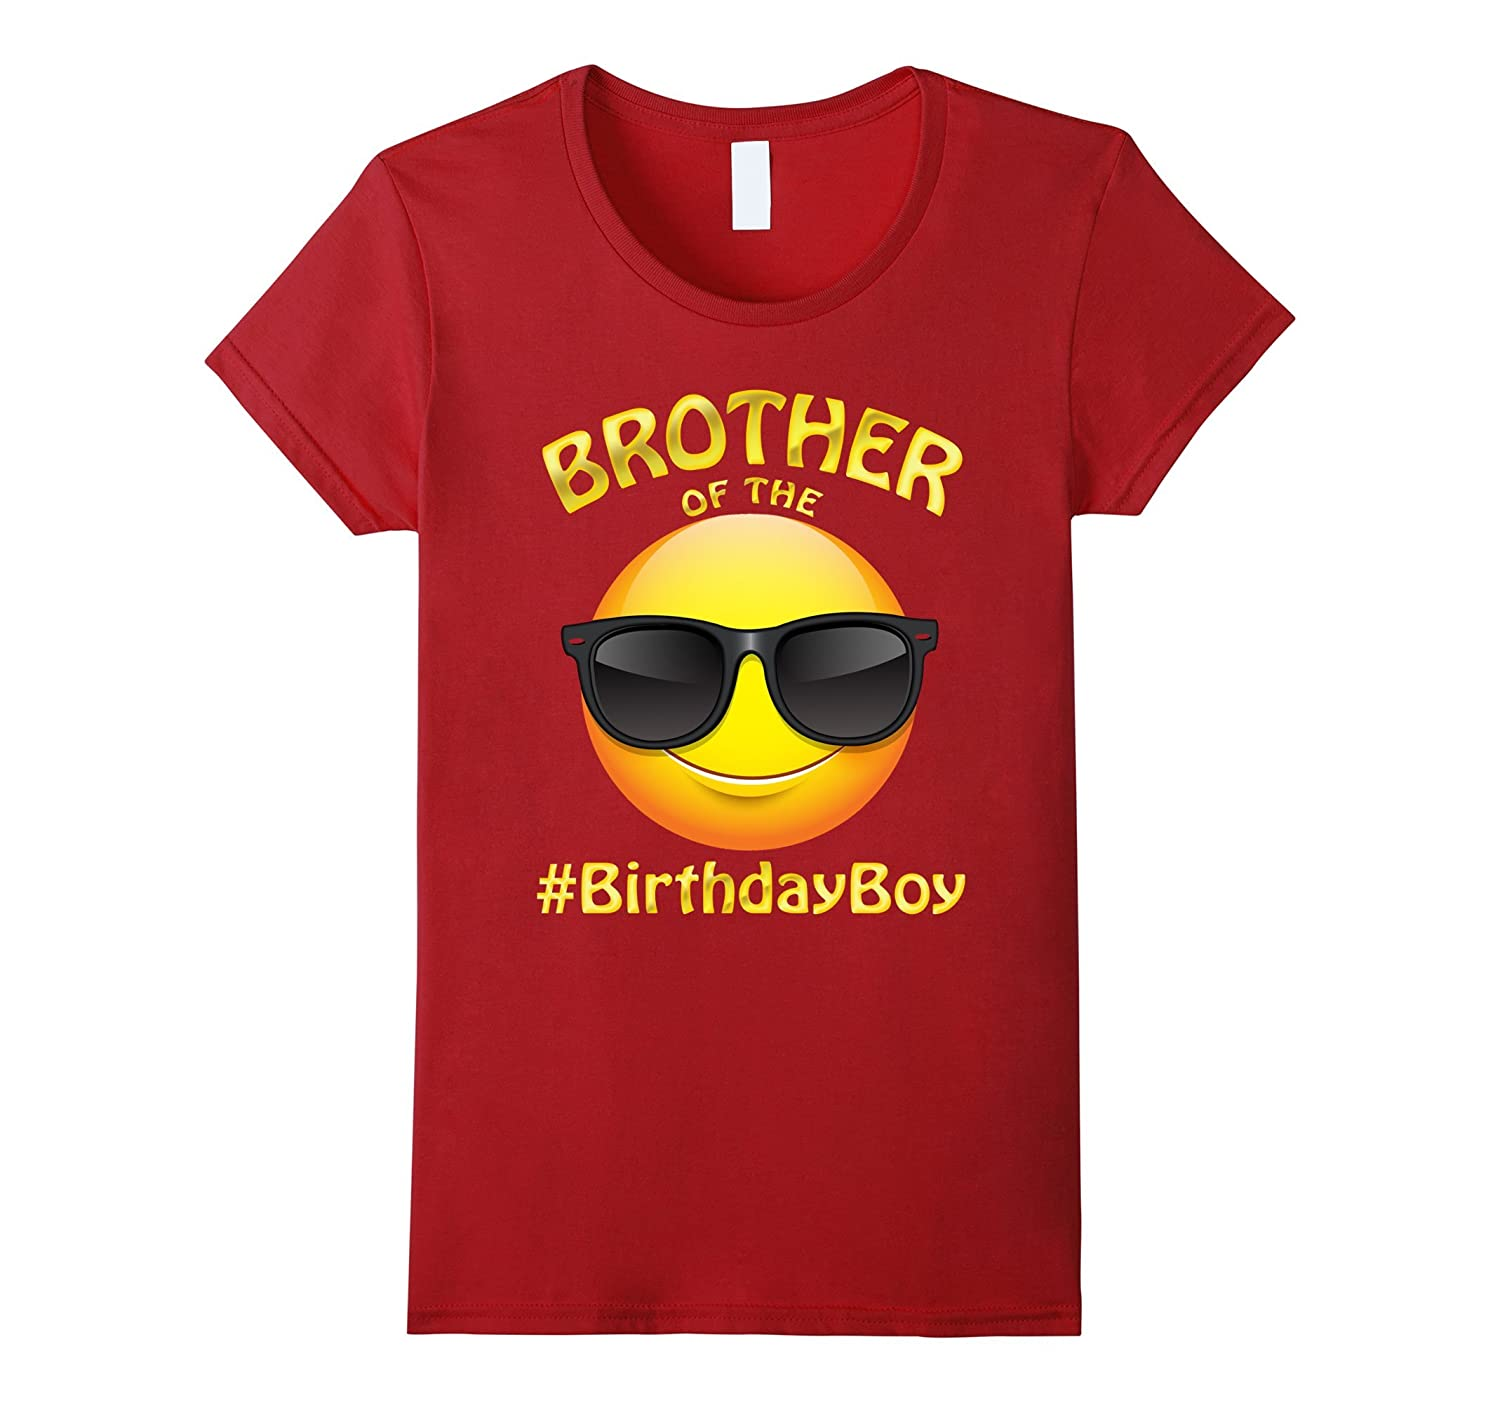 Brother Of The Birthday Boy Emoji T-Shirt for cool Boy-Protee